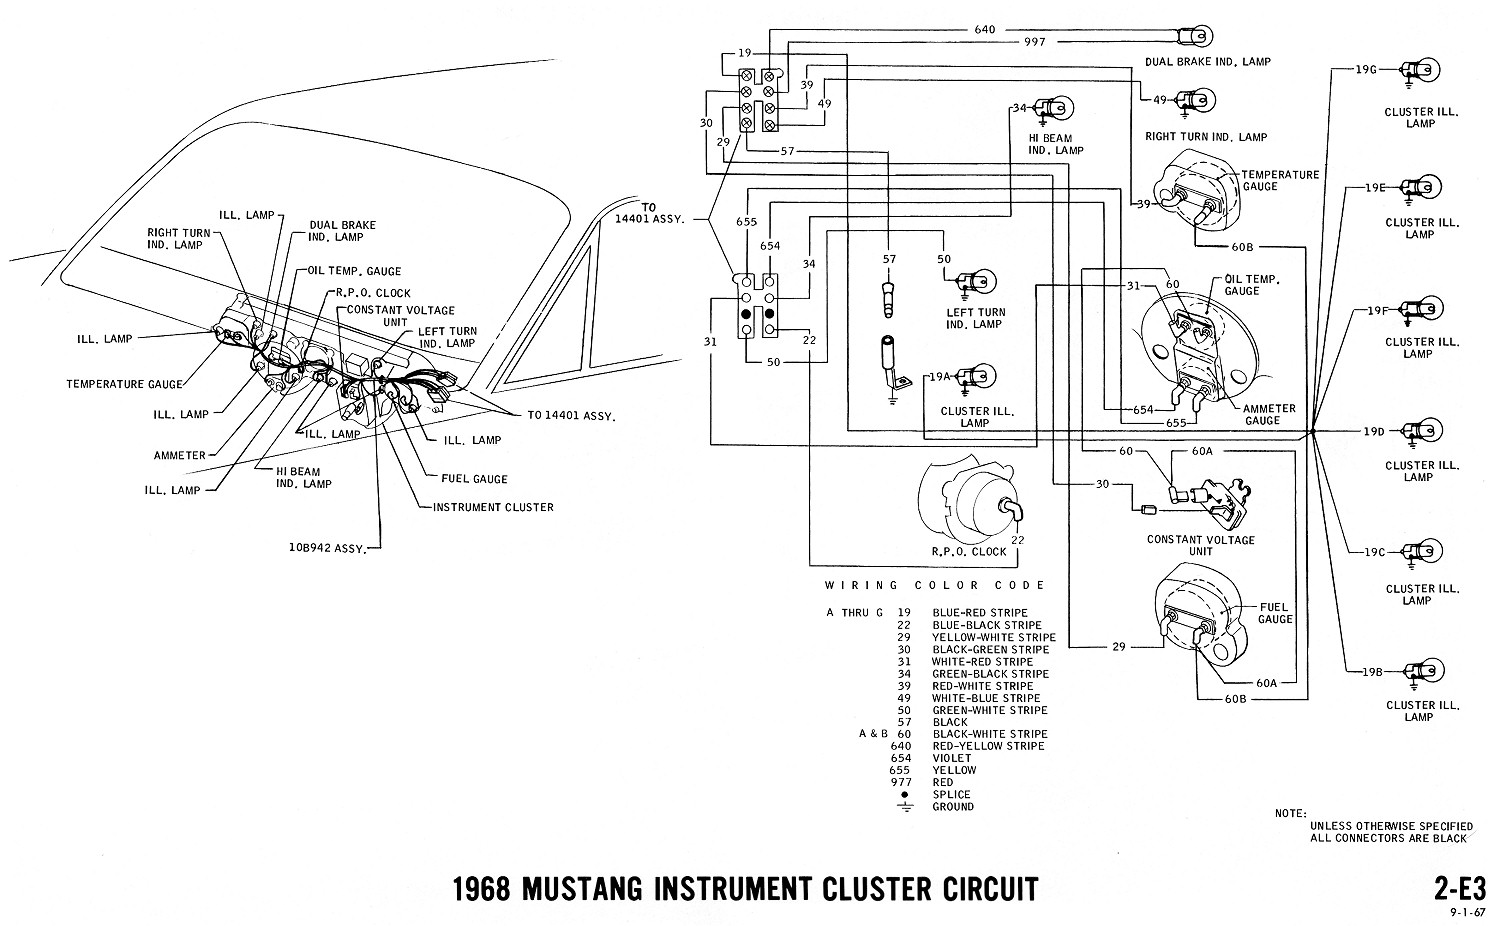 Wiring diagram for a 1968 ford mustang the wiring diagram wiring diagram